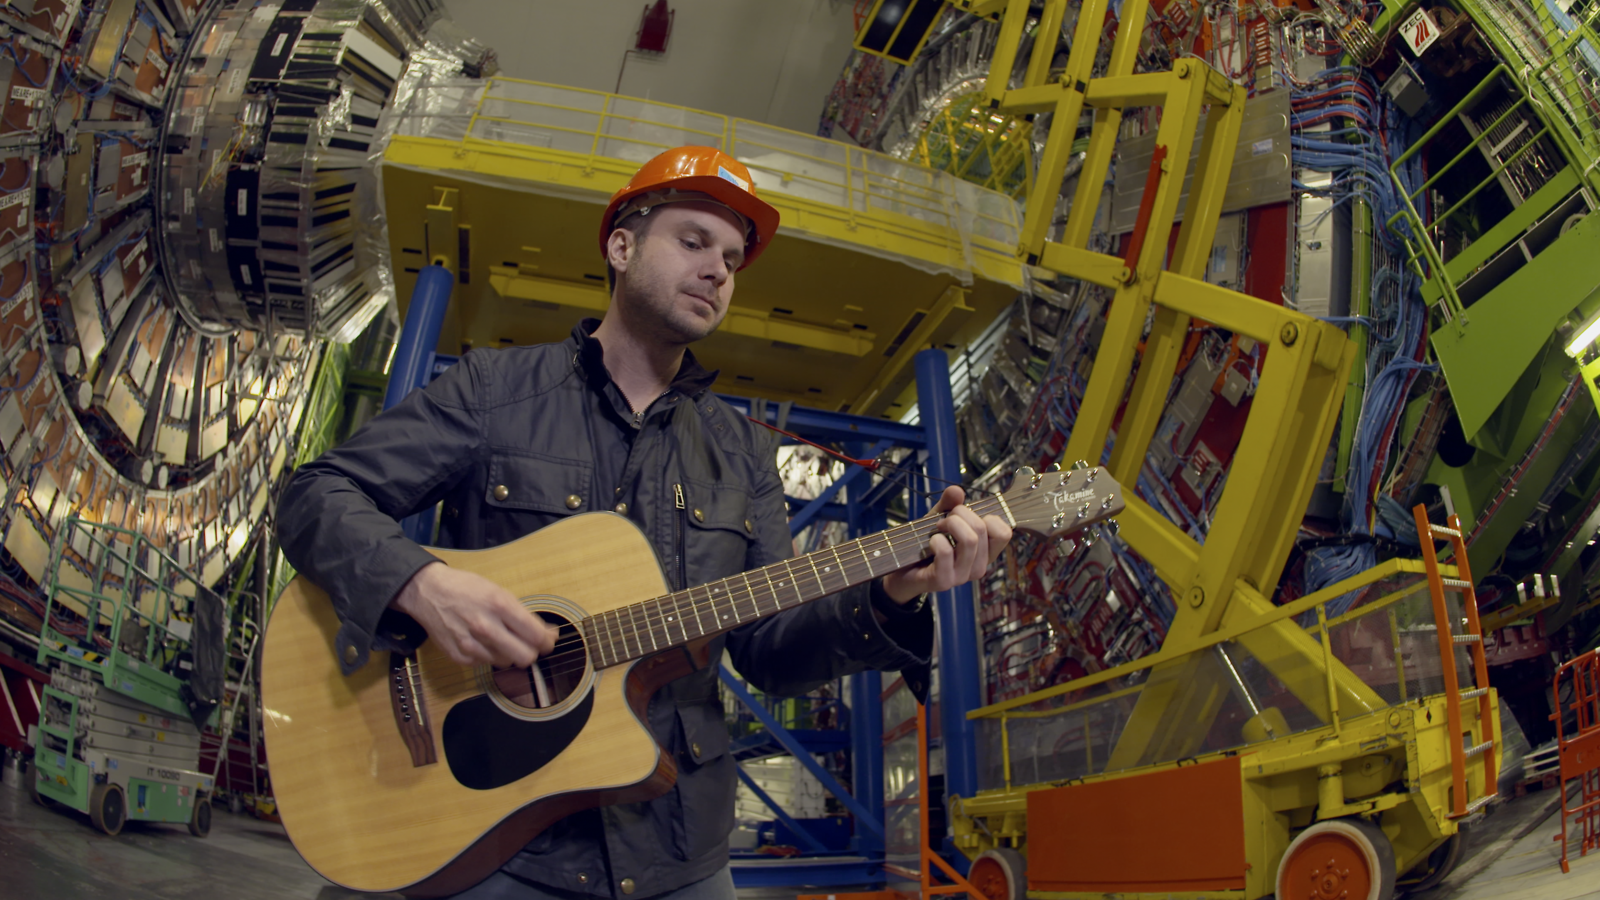 Howie Day plays a song at CERN